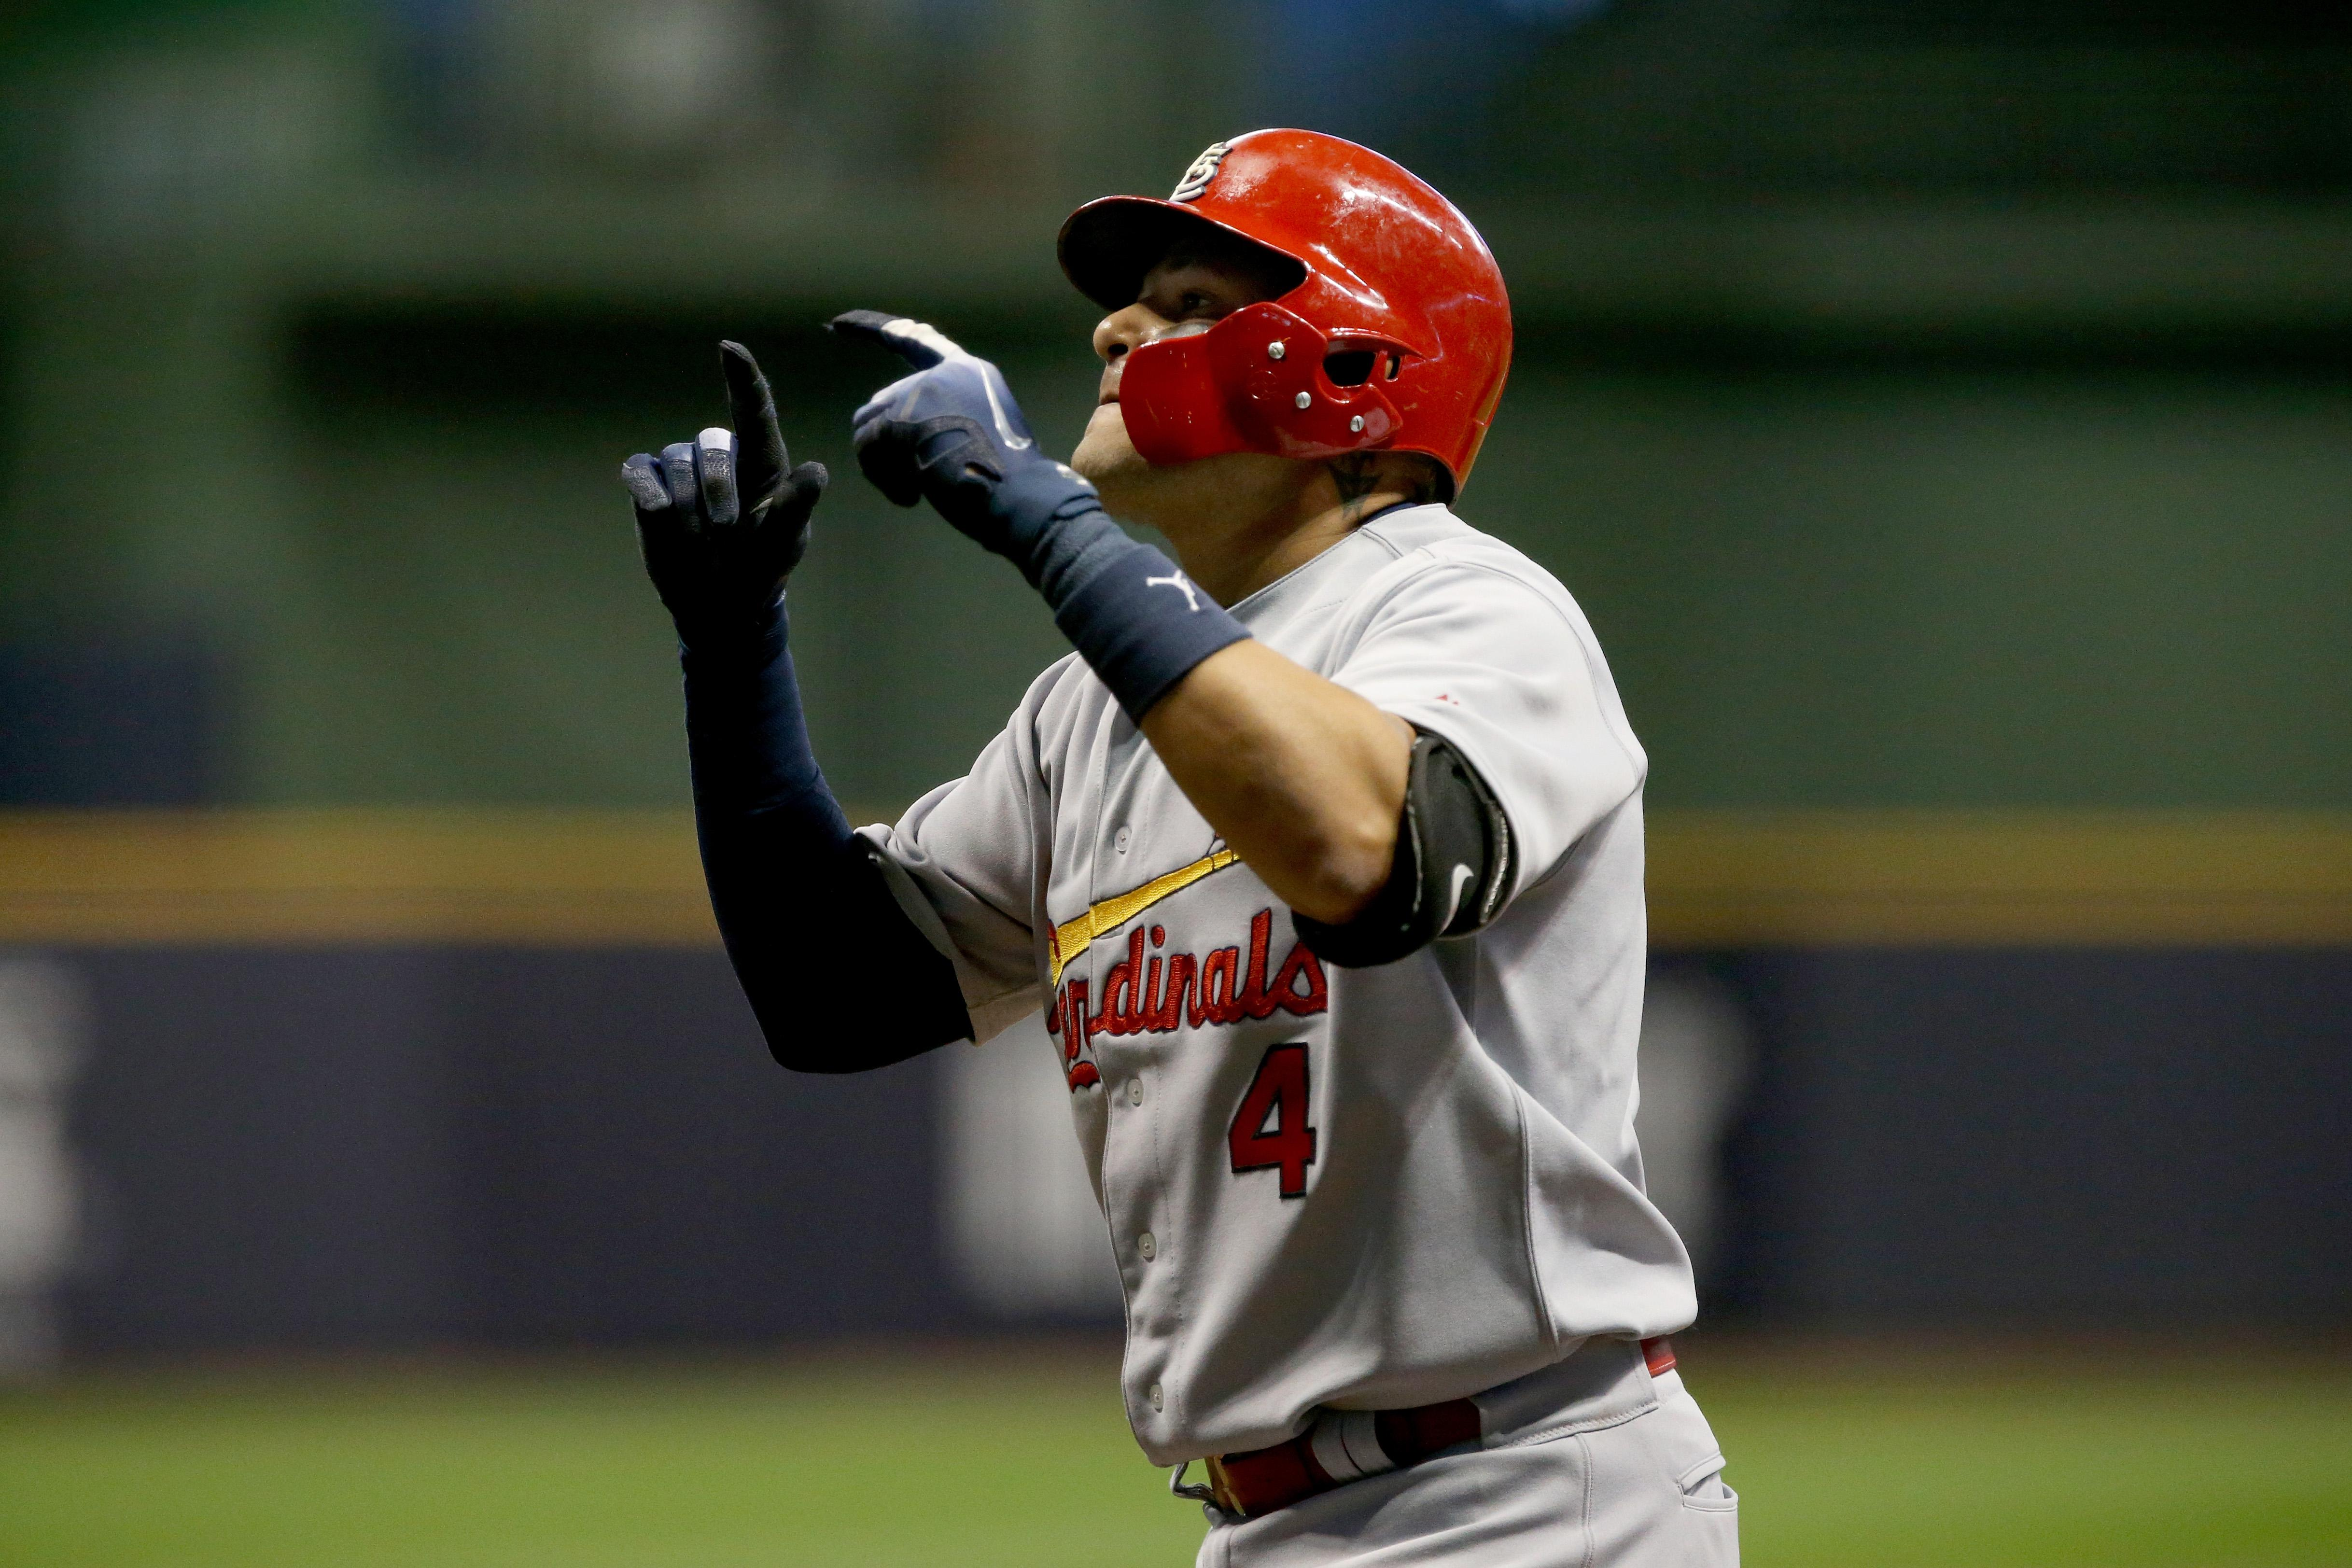 'PANDEMIC HAS CHANGED EVERYTHING': Yadier Molina open to leaving Cardinals